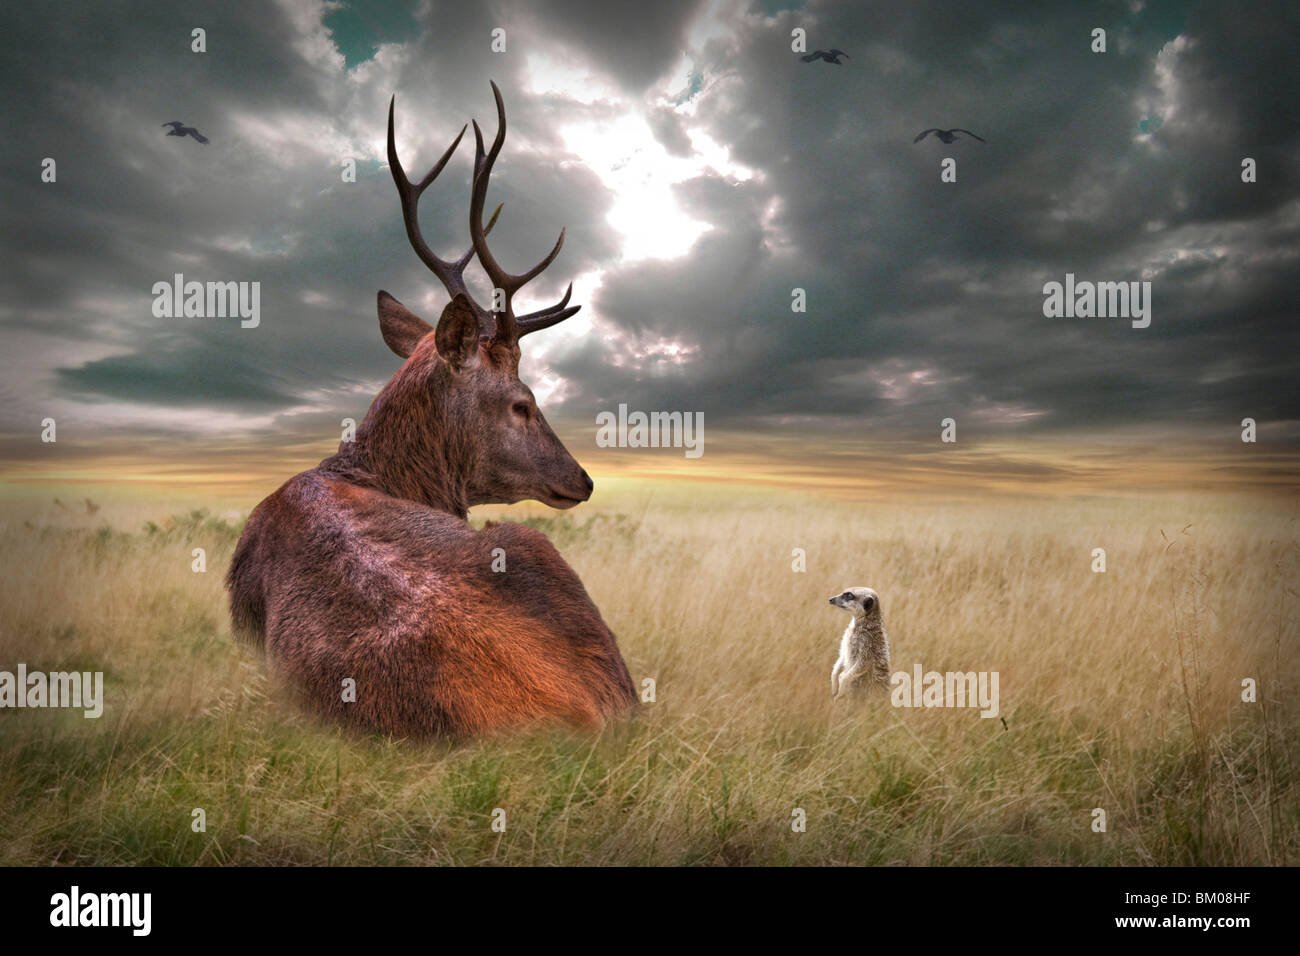 Stag lying down on wide plains with stormy skies - Stock Image